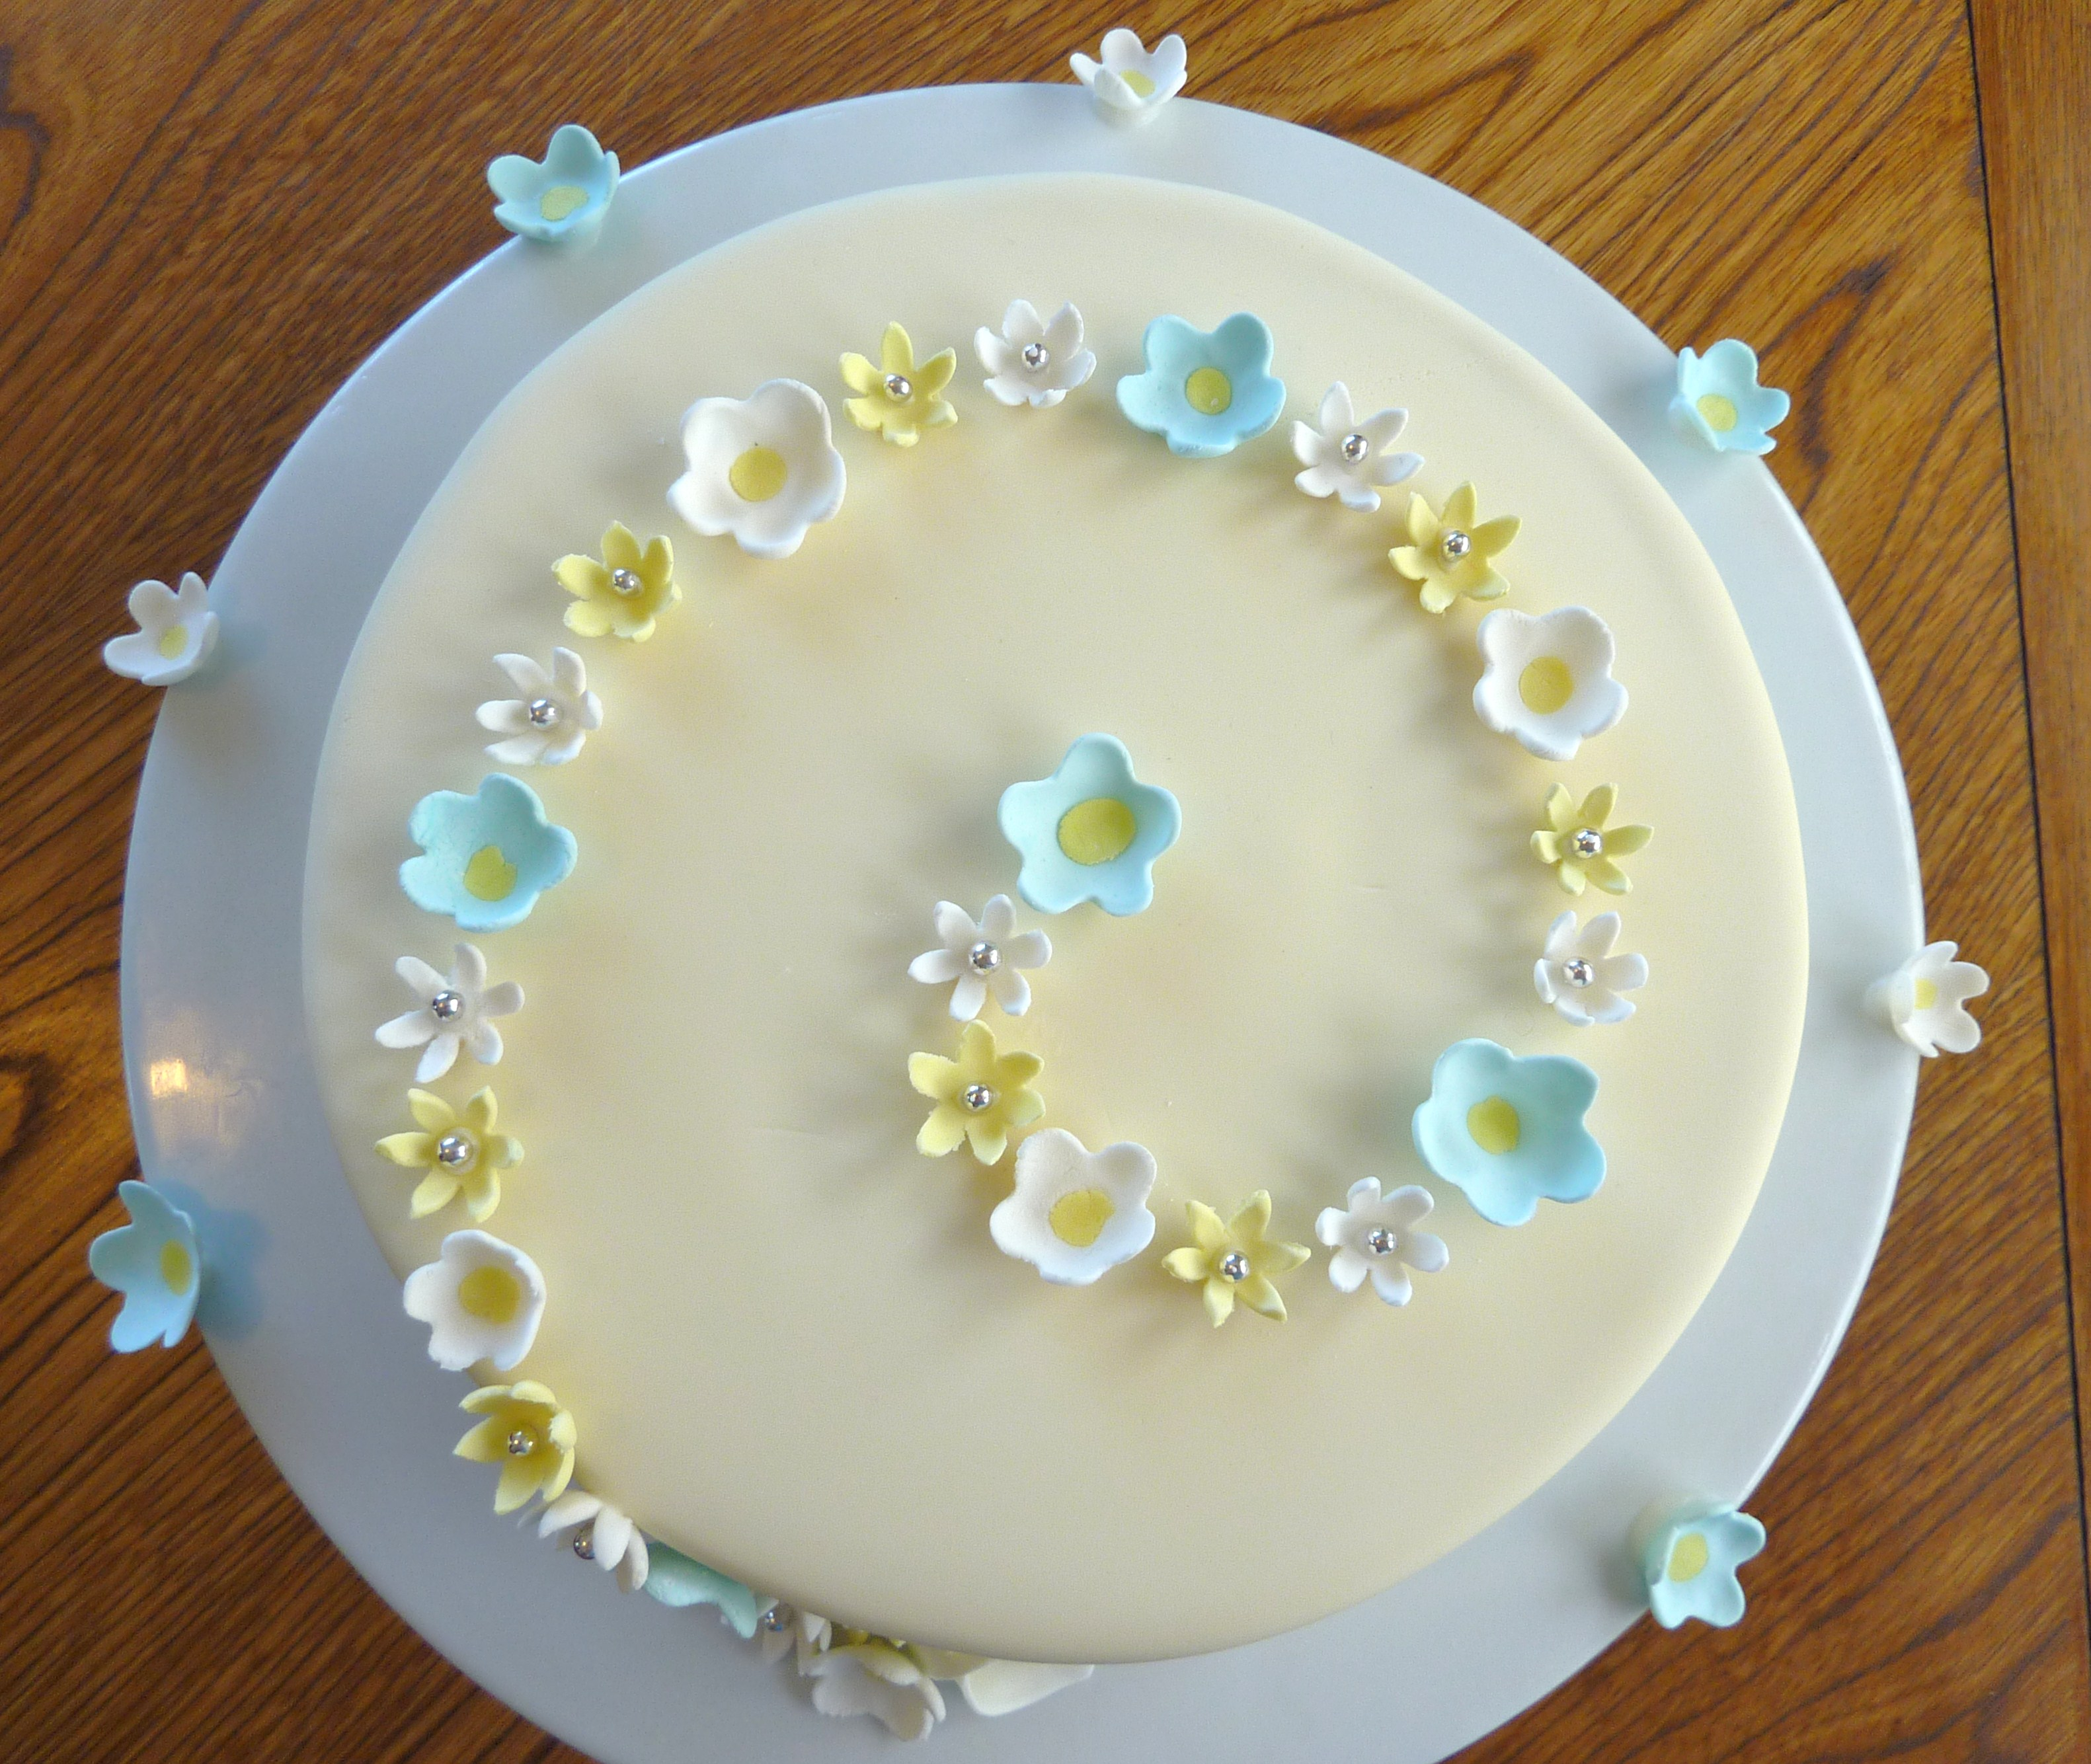 ... It's a vanilla/choc swirl cake with buttercream and rolled fondant